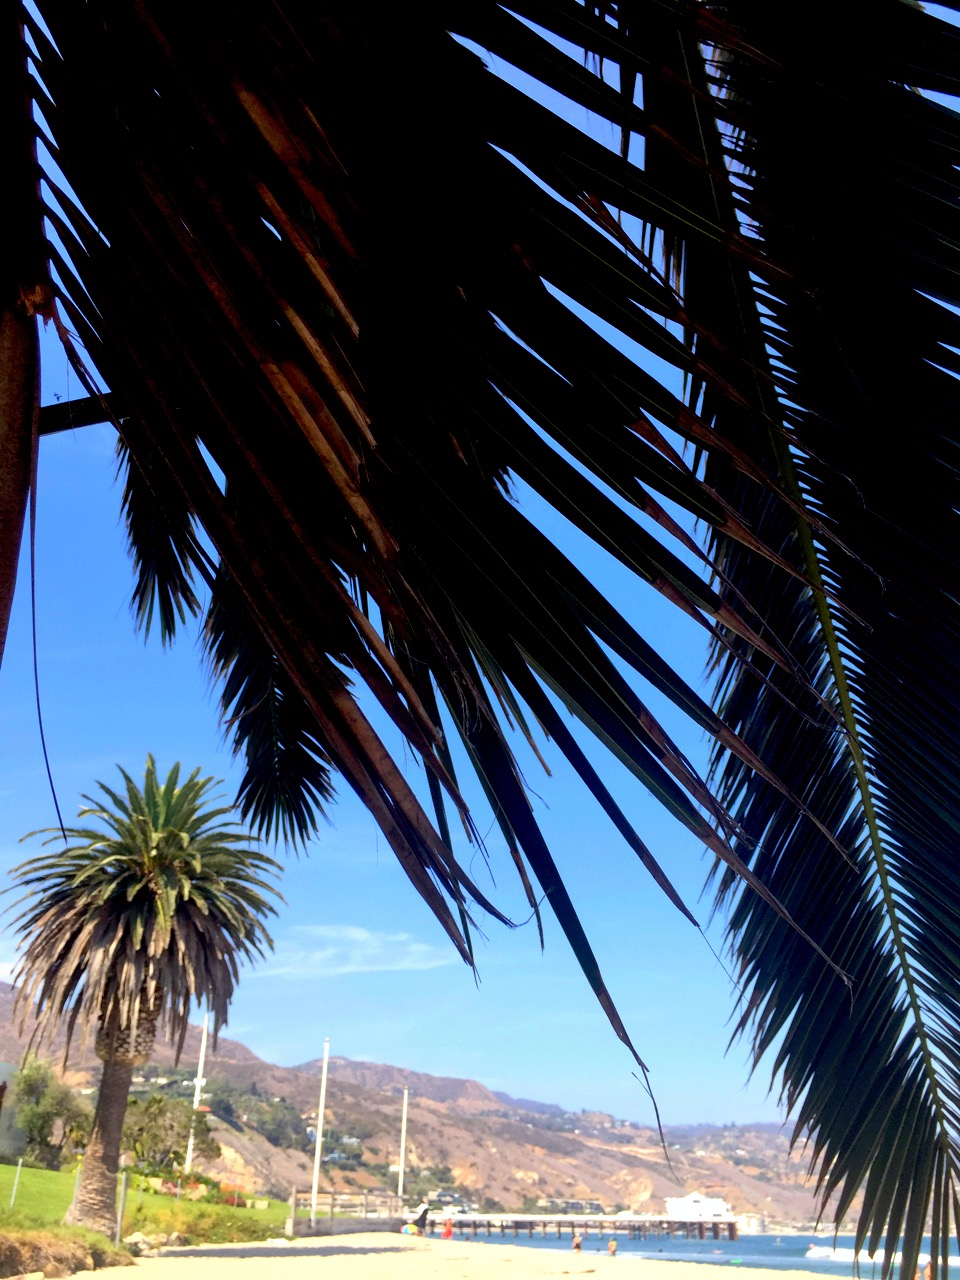 A dark green palm tree dominates the sky along side the beach with additional palm trees in the background at Malibu Lagoon family therapy activity.